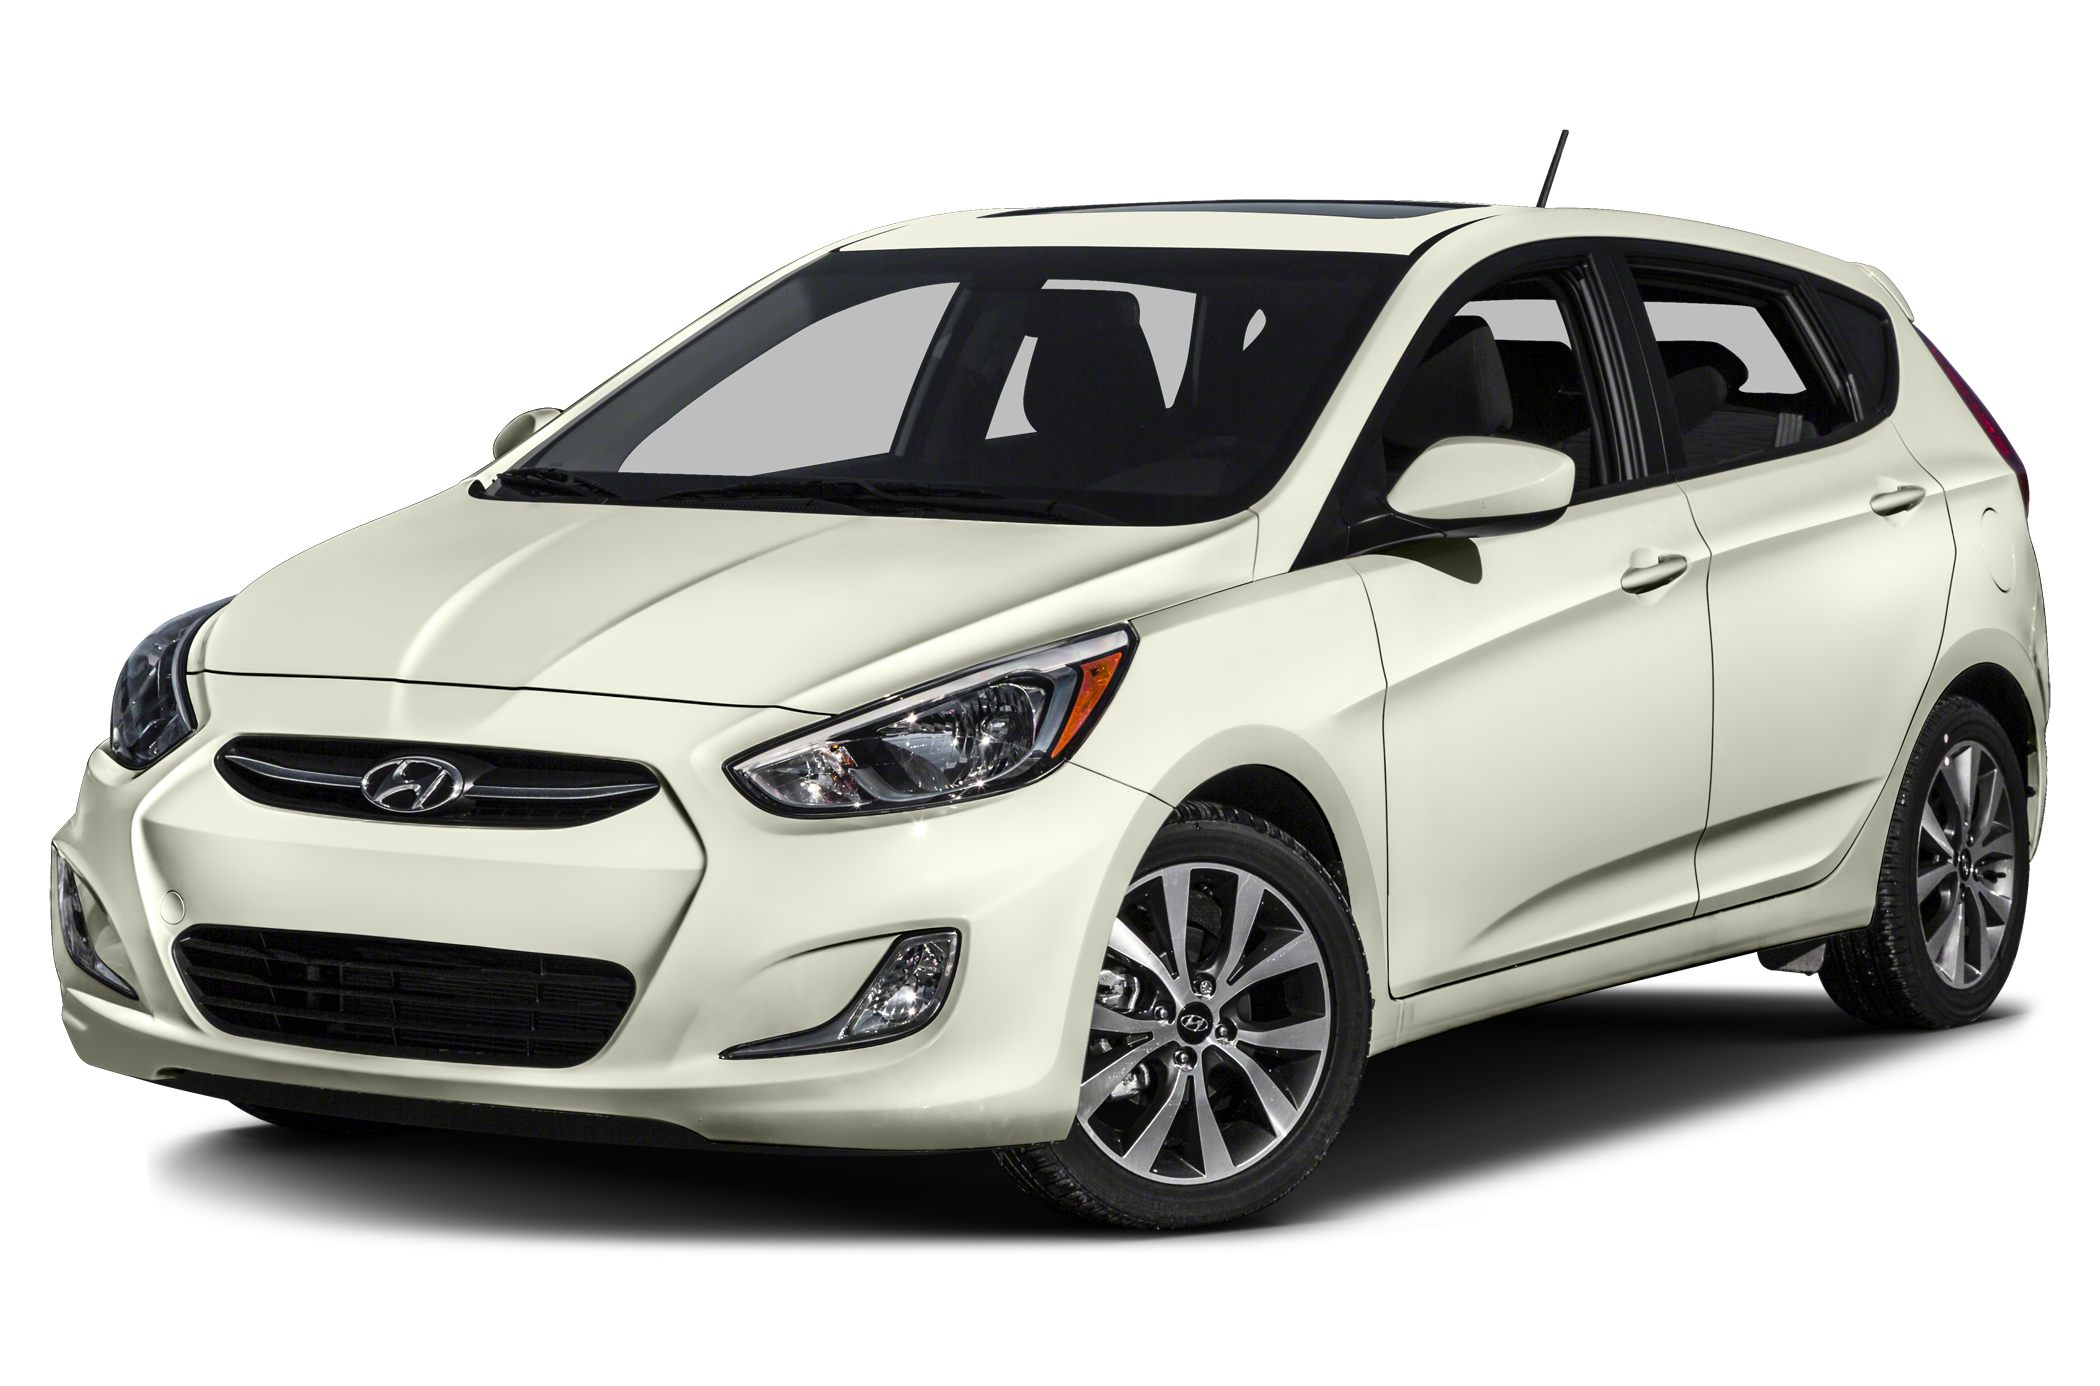 2015 Hyundai Accent GS Hatchback for sale in Winter Park for $14,999 with 11 miles